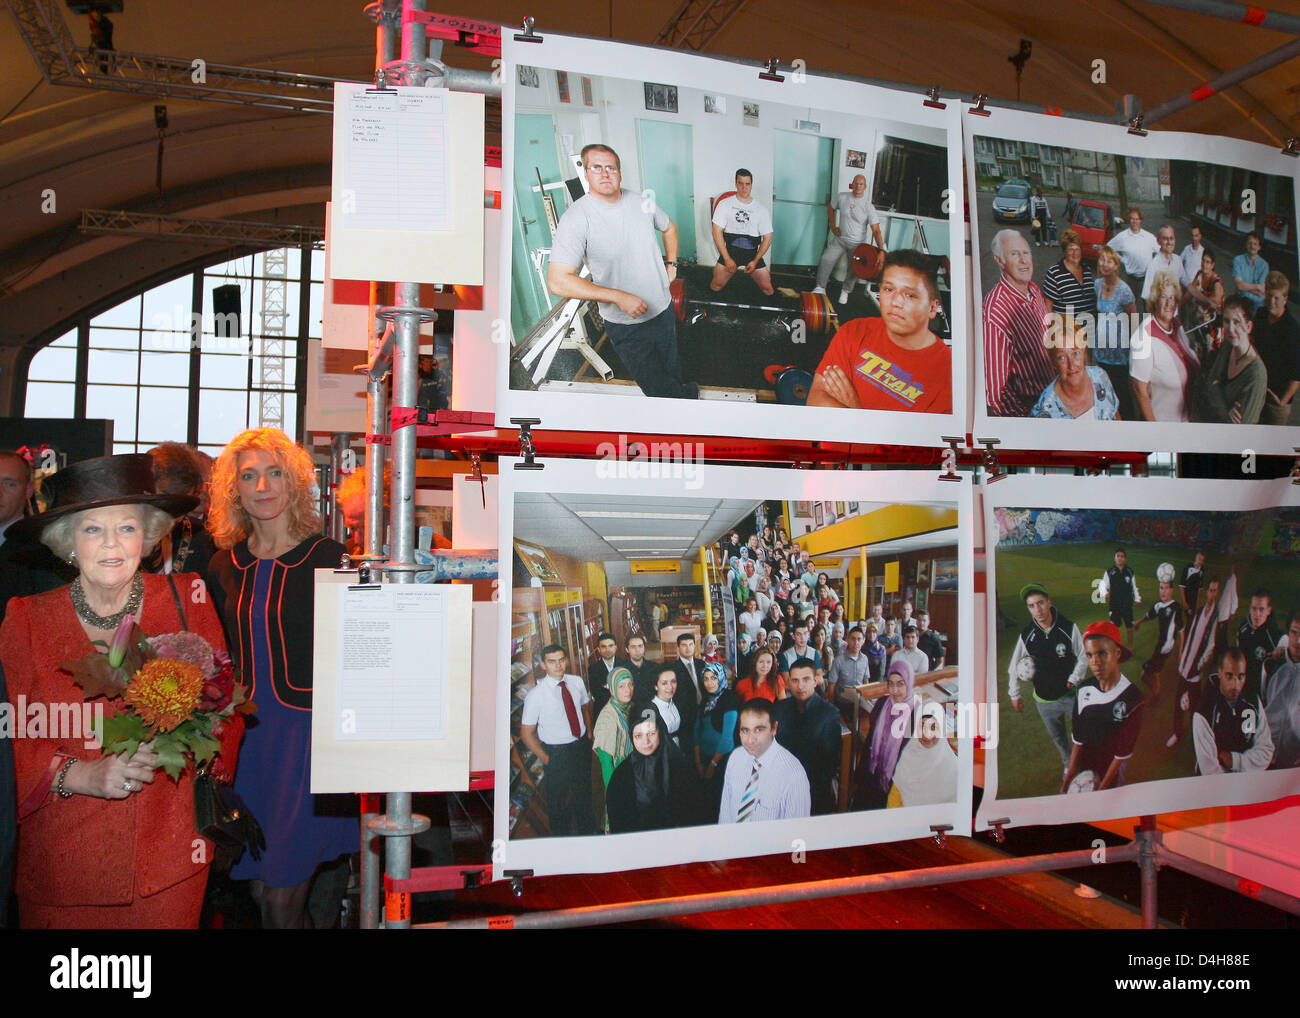 Dutch Queen Beatrix attends the presentation of the photo